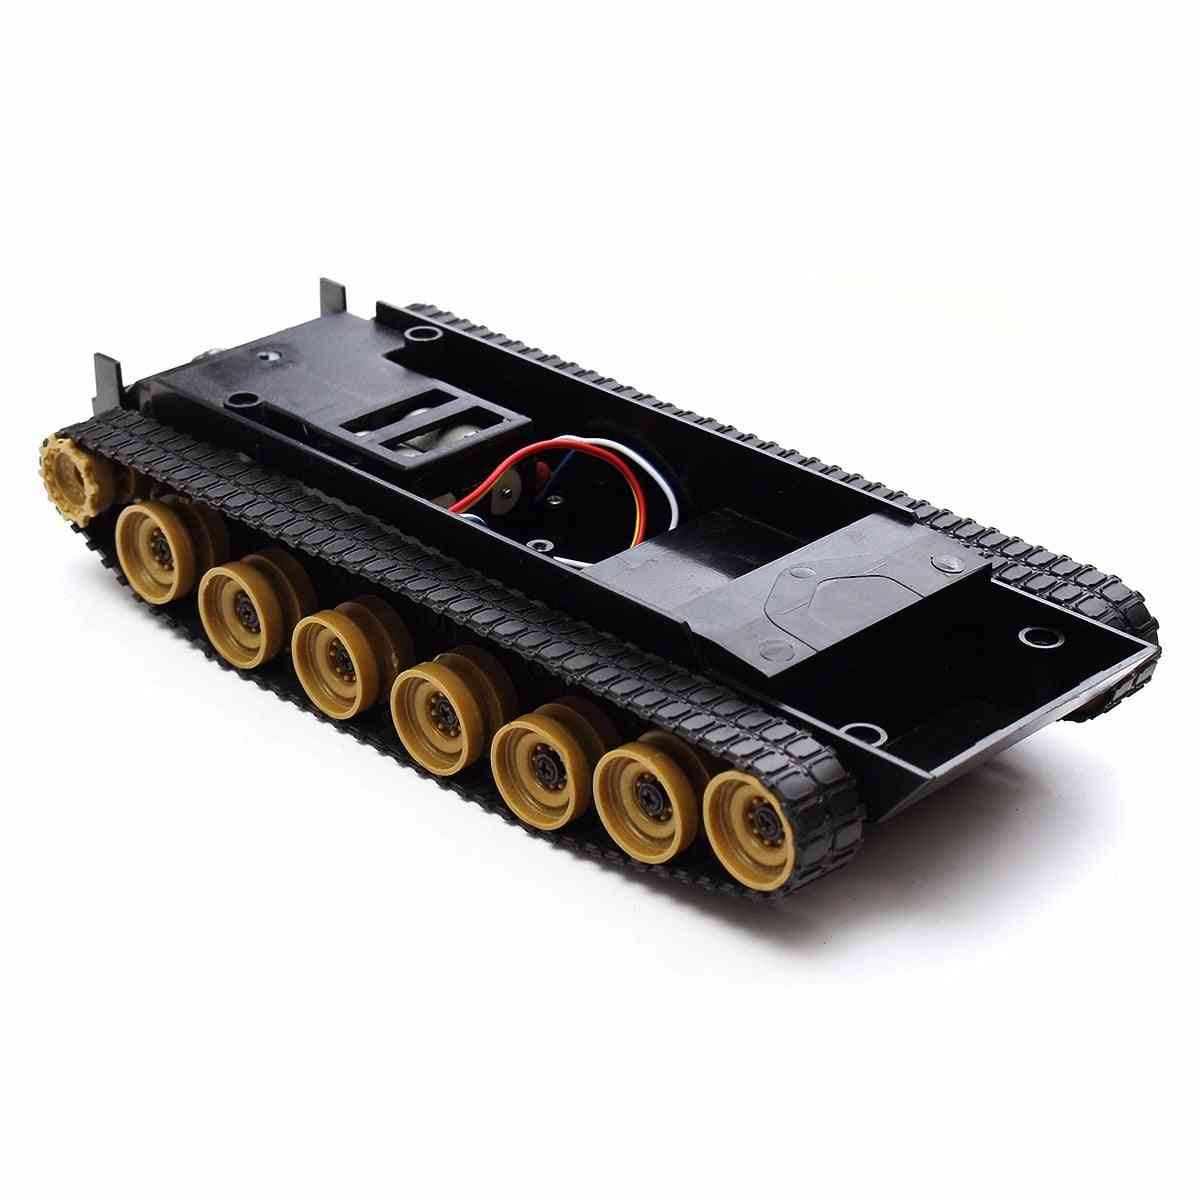 Tank Smart Robot Car Chassis, Rubber Track Crawler Kit